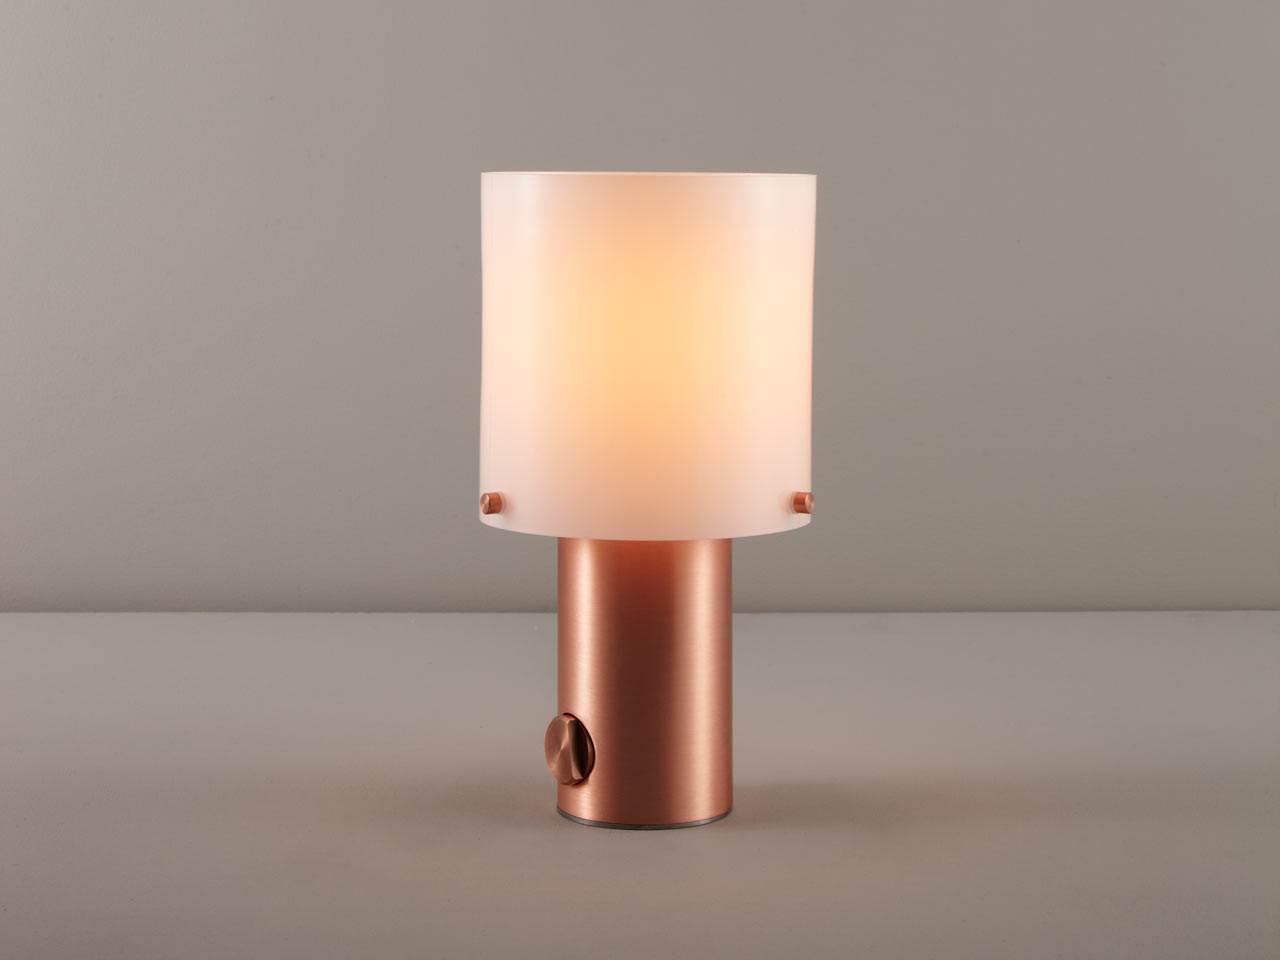 This gorgeous table lamp is called Walter and brings gorgeous vintage aethetics and a trendy metallic finish to your space